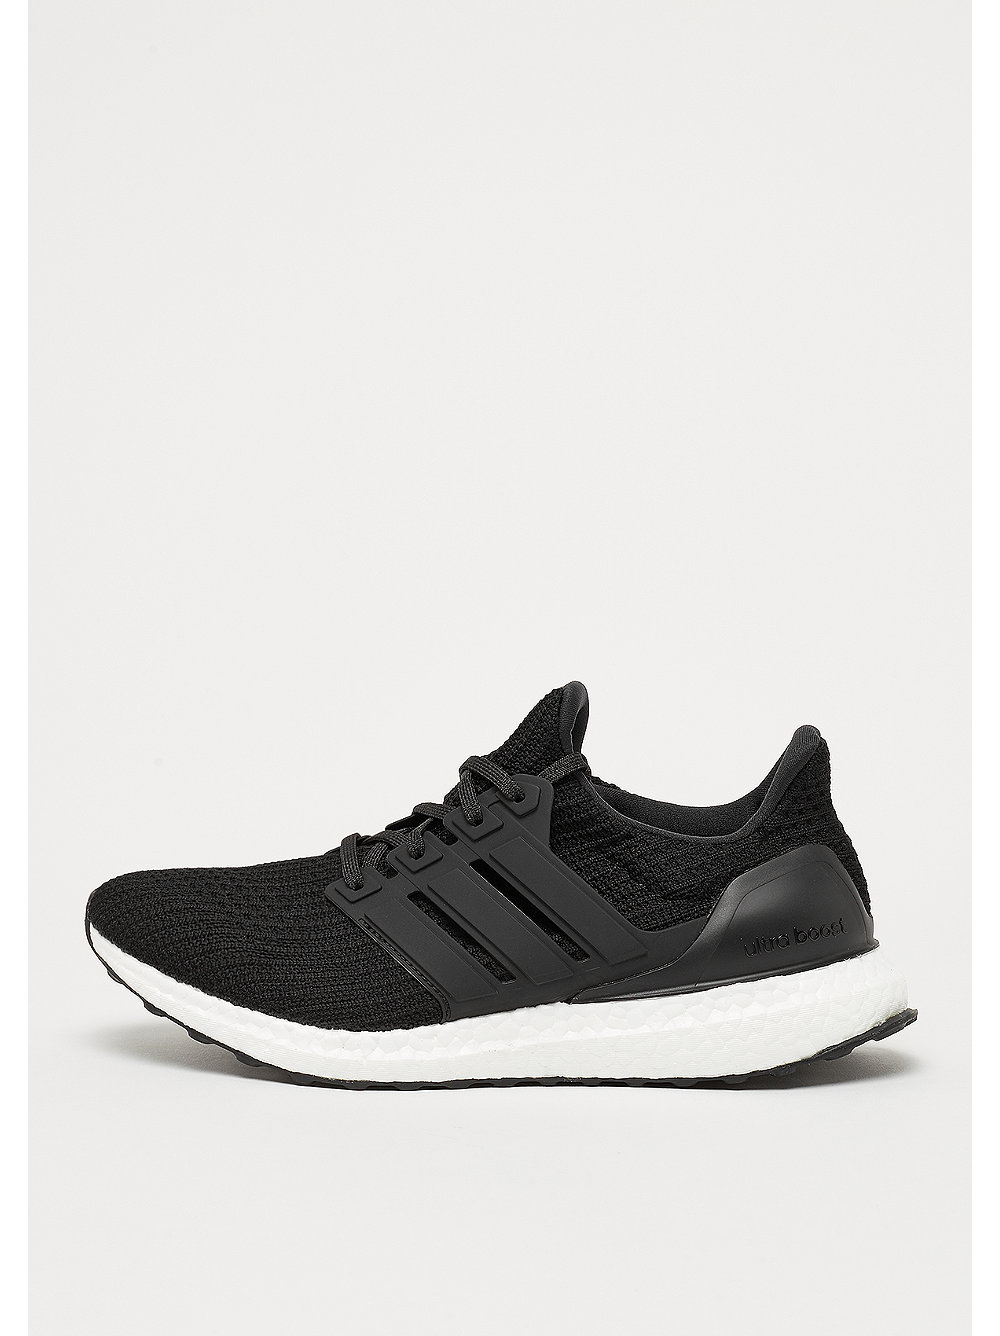 adidas ultra boost damen 43